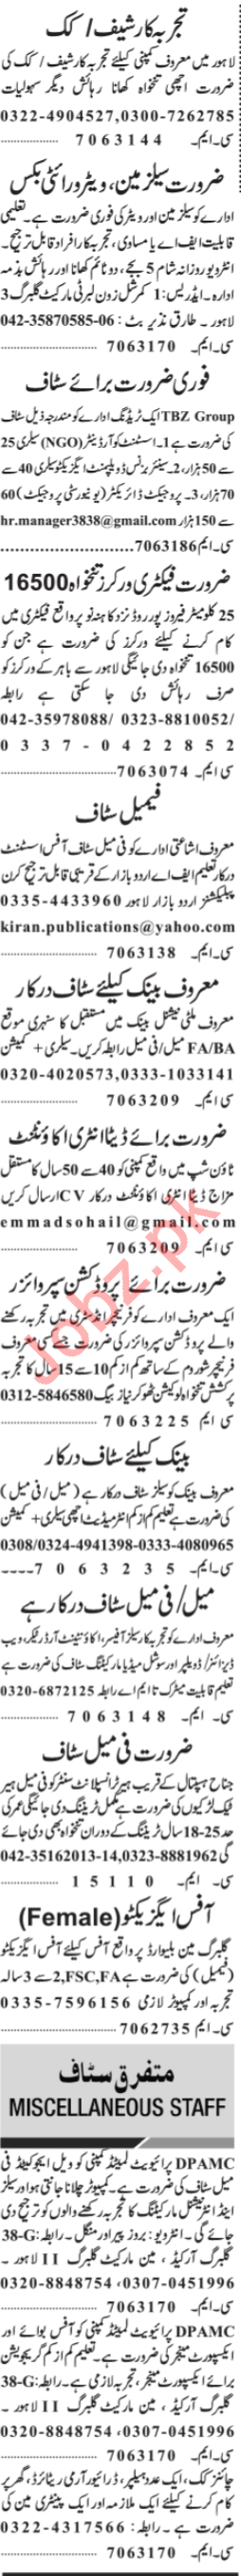 Jang Sunday Classified Ads 24th March 2019 Multiple Staff